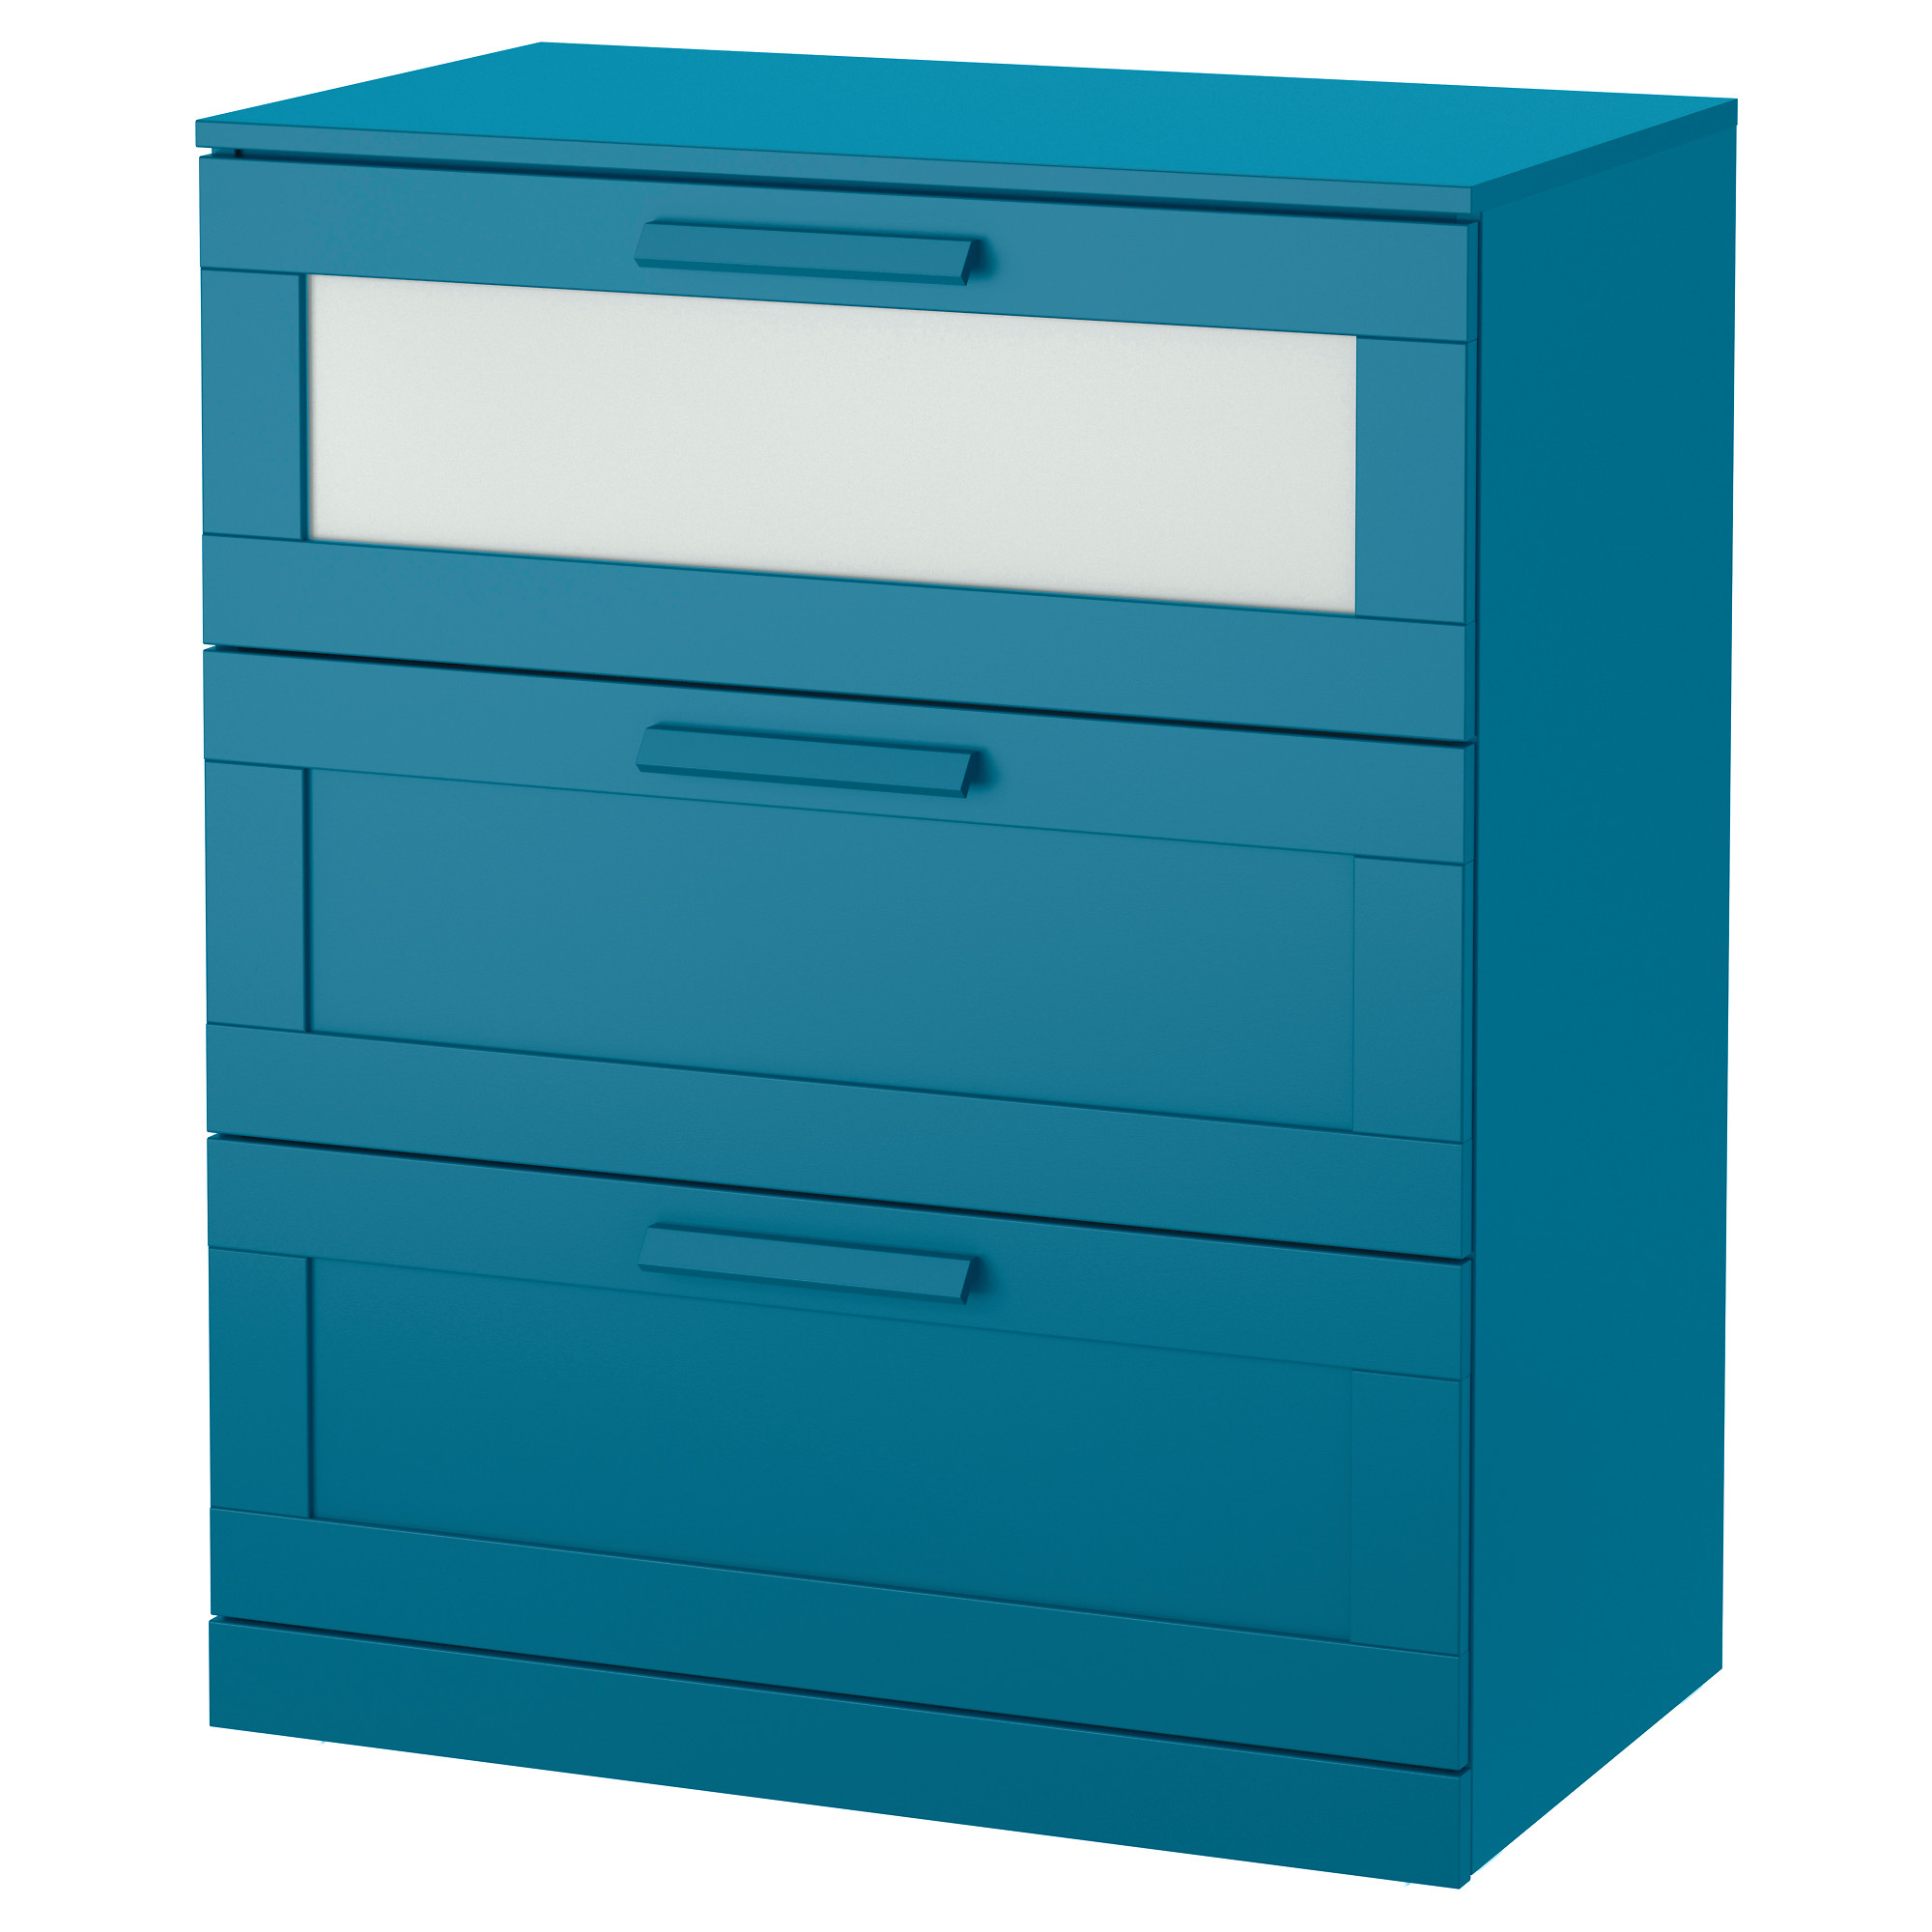 Ikea bedroom furniture chest of drawers - Brimnes 3 Drawer Chest Dark Green Blue Frosted Glass Width 30